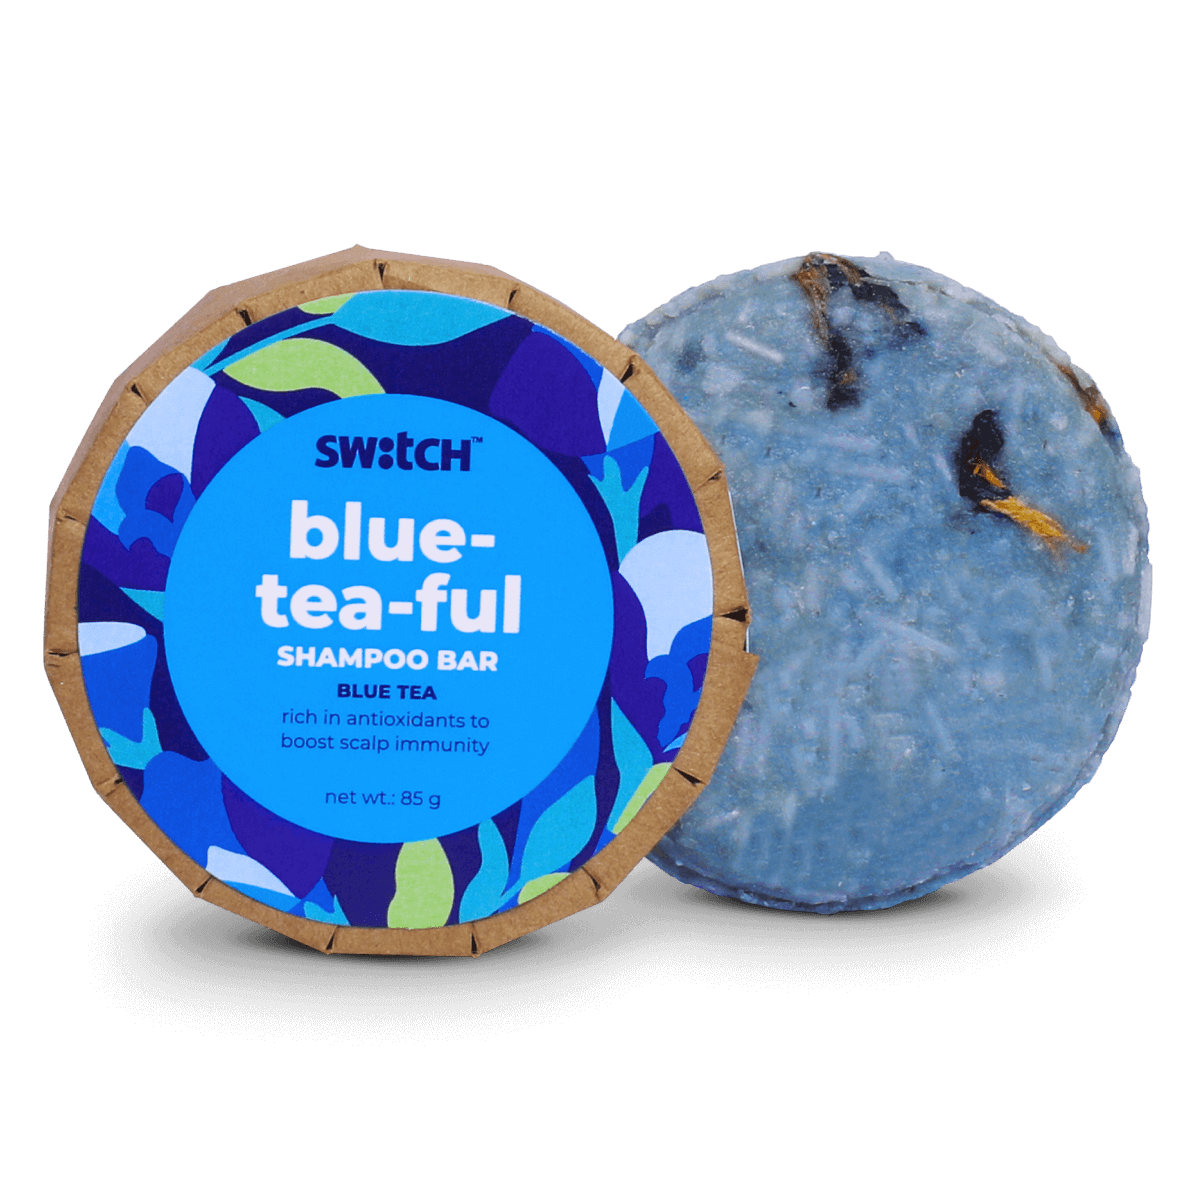 Blue-Tea-Ful Shampoo Bar for Scalp Immunity Hero Image